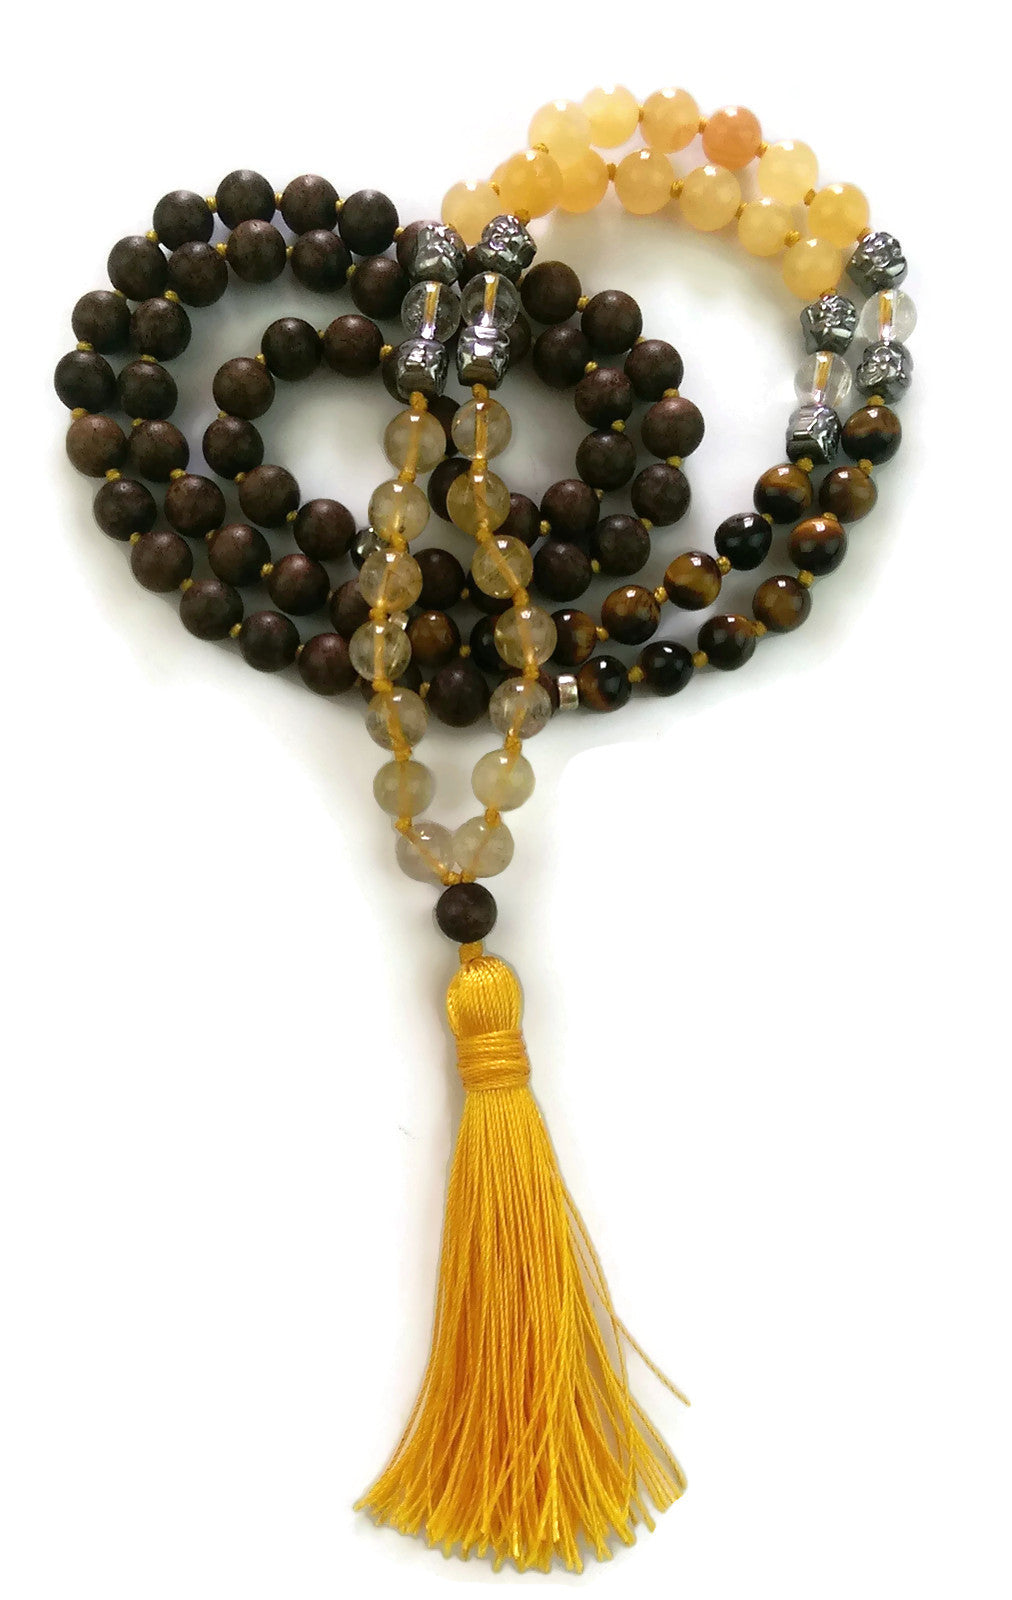 Fresh Start Chakra Collection 8mm Mountain Crystal Topaz Tiger Eye Agarwood Traditional Knotted 108 Meditation Mala Necklace Solar Plexus